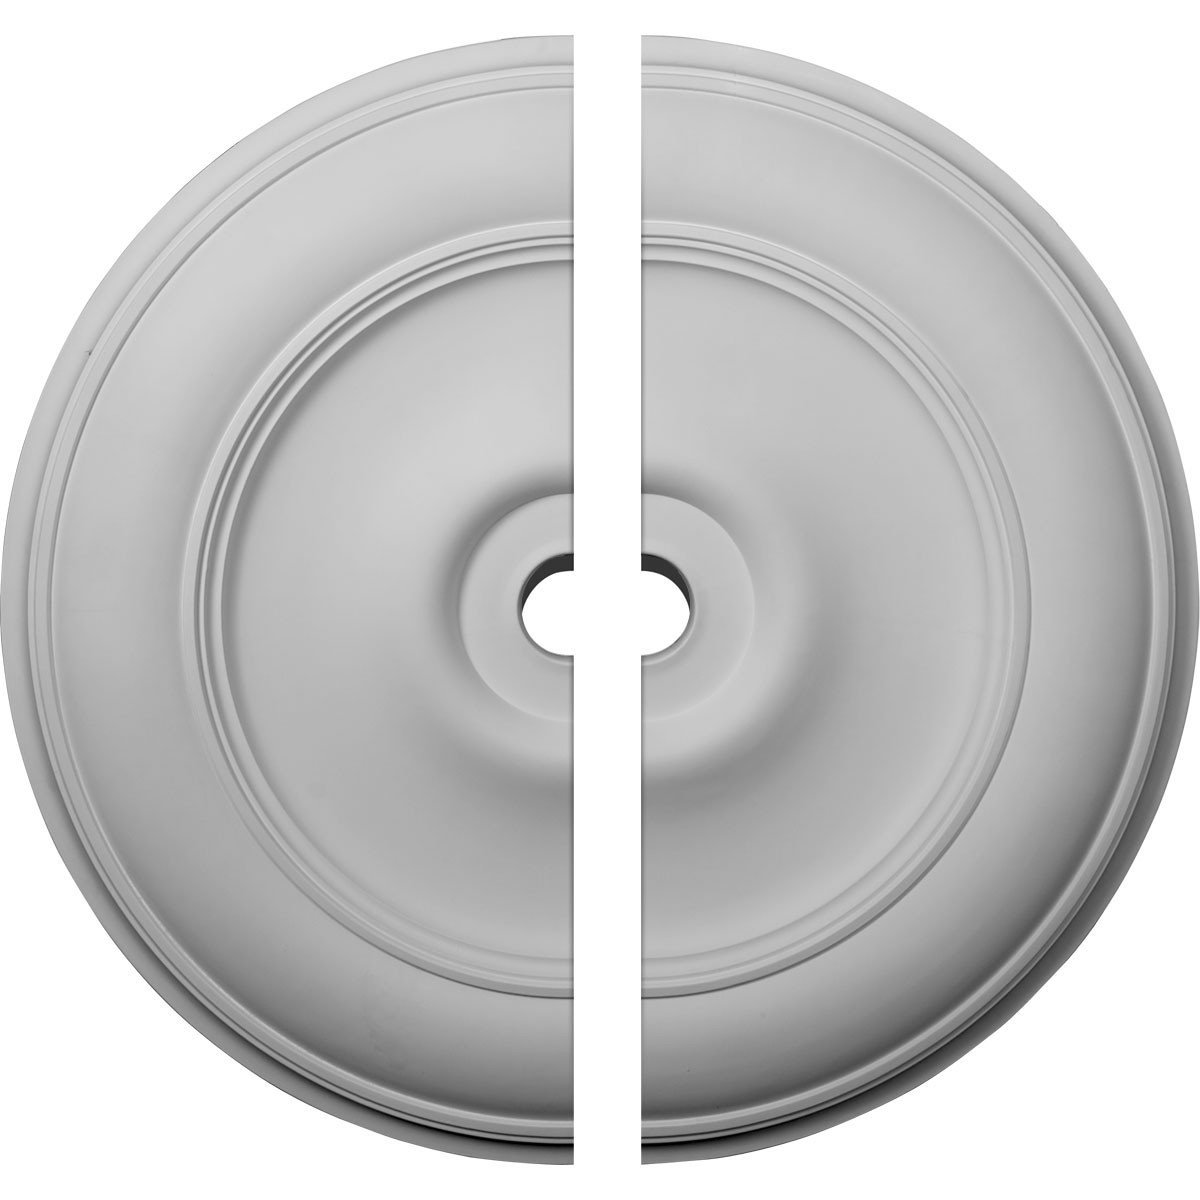 """EM-CM44CL2 - 44 1/2""""OD x 4""""ID x 4 """"P Classic Ceiling Medallion, Two Piece (Fits Canopies up to 8 1/4"""")"""